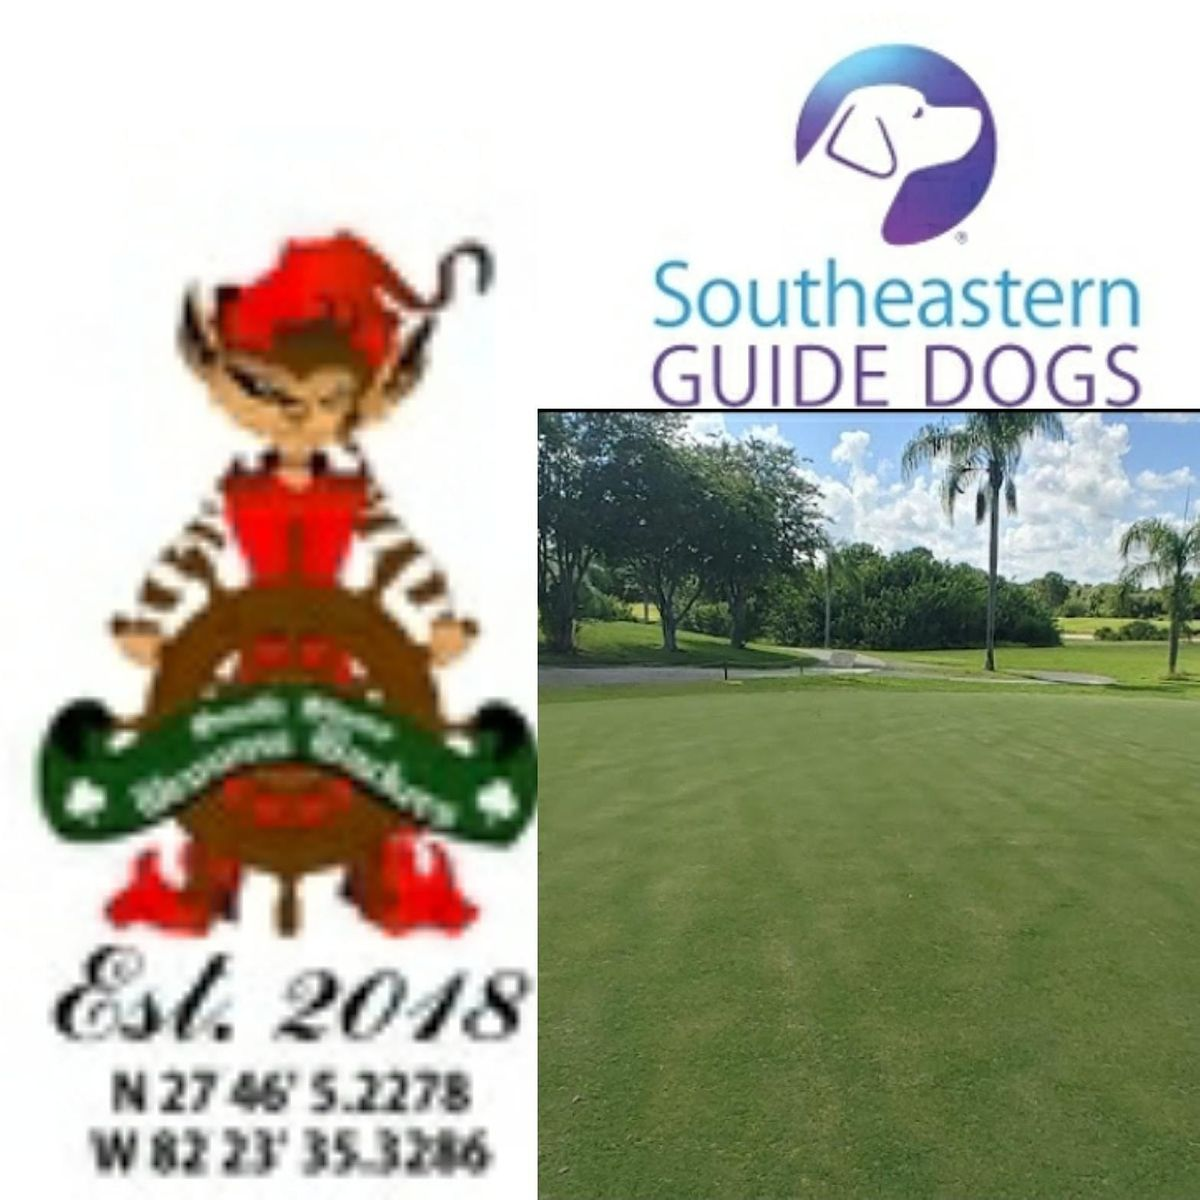 Annual Golf For Guide Dogs Presented by the South Shore Browns Backers